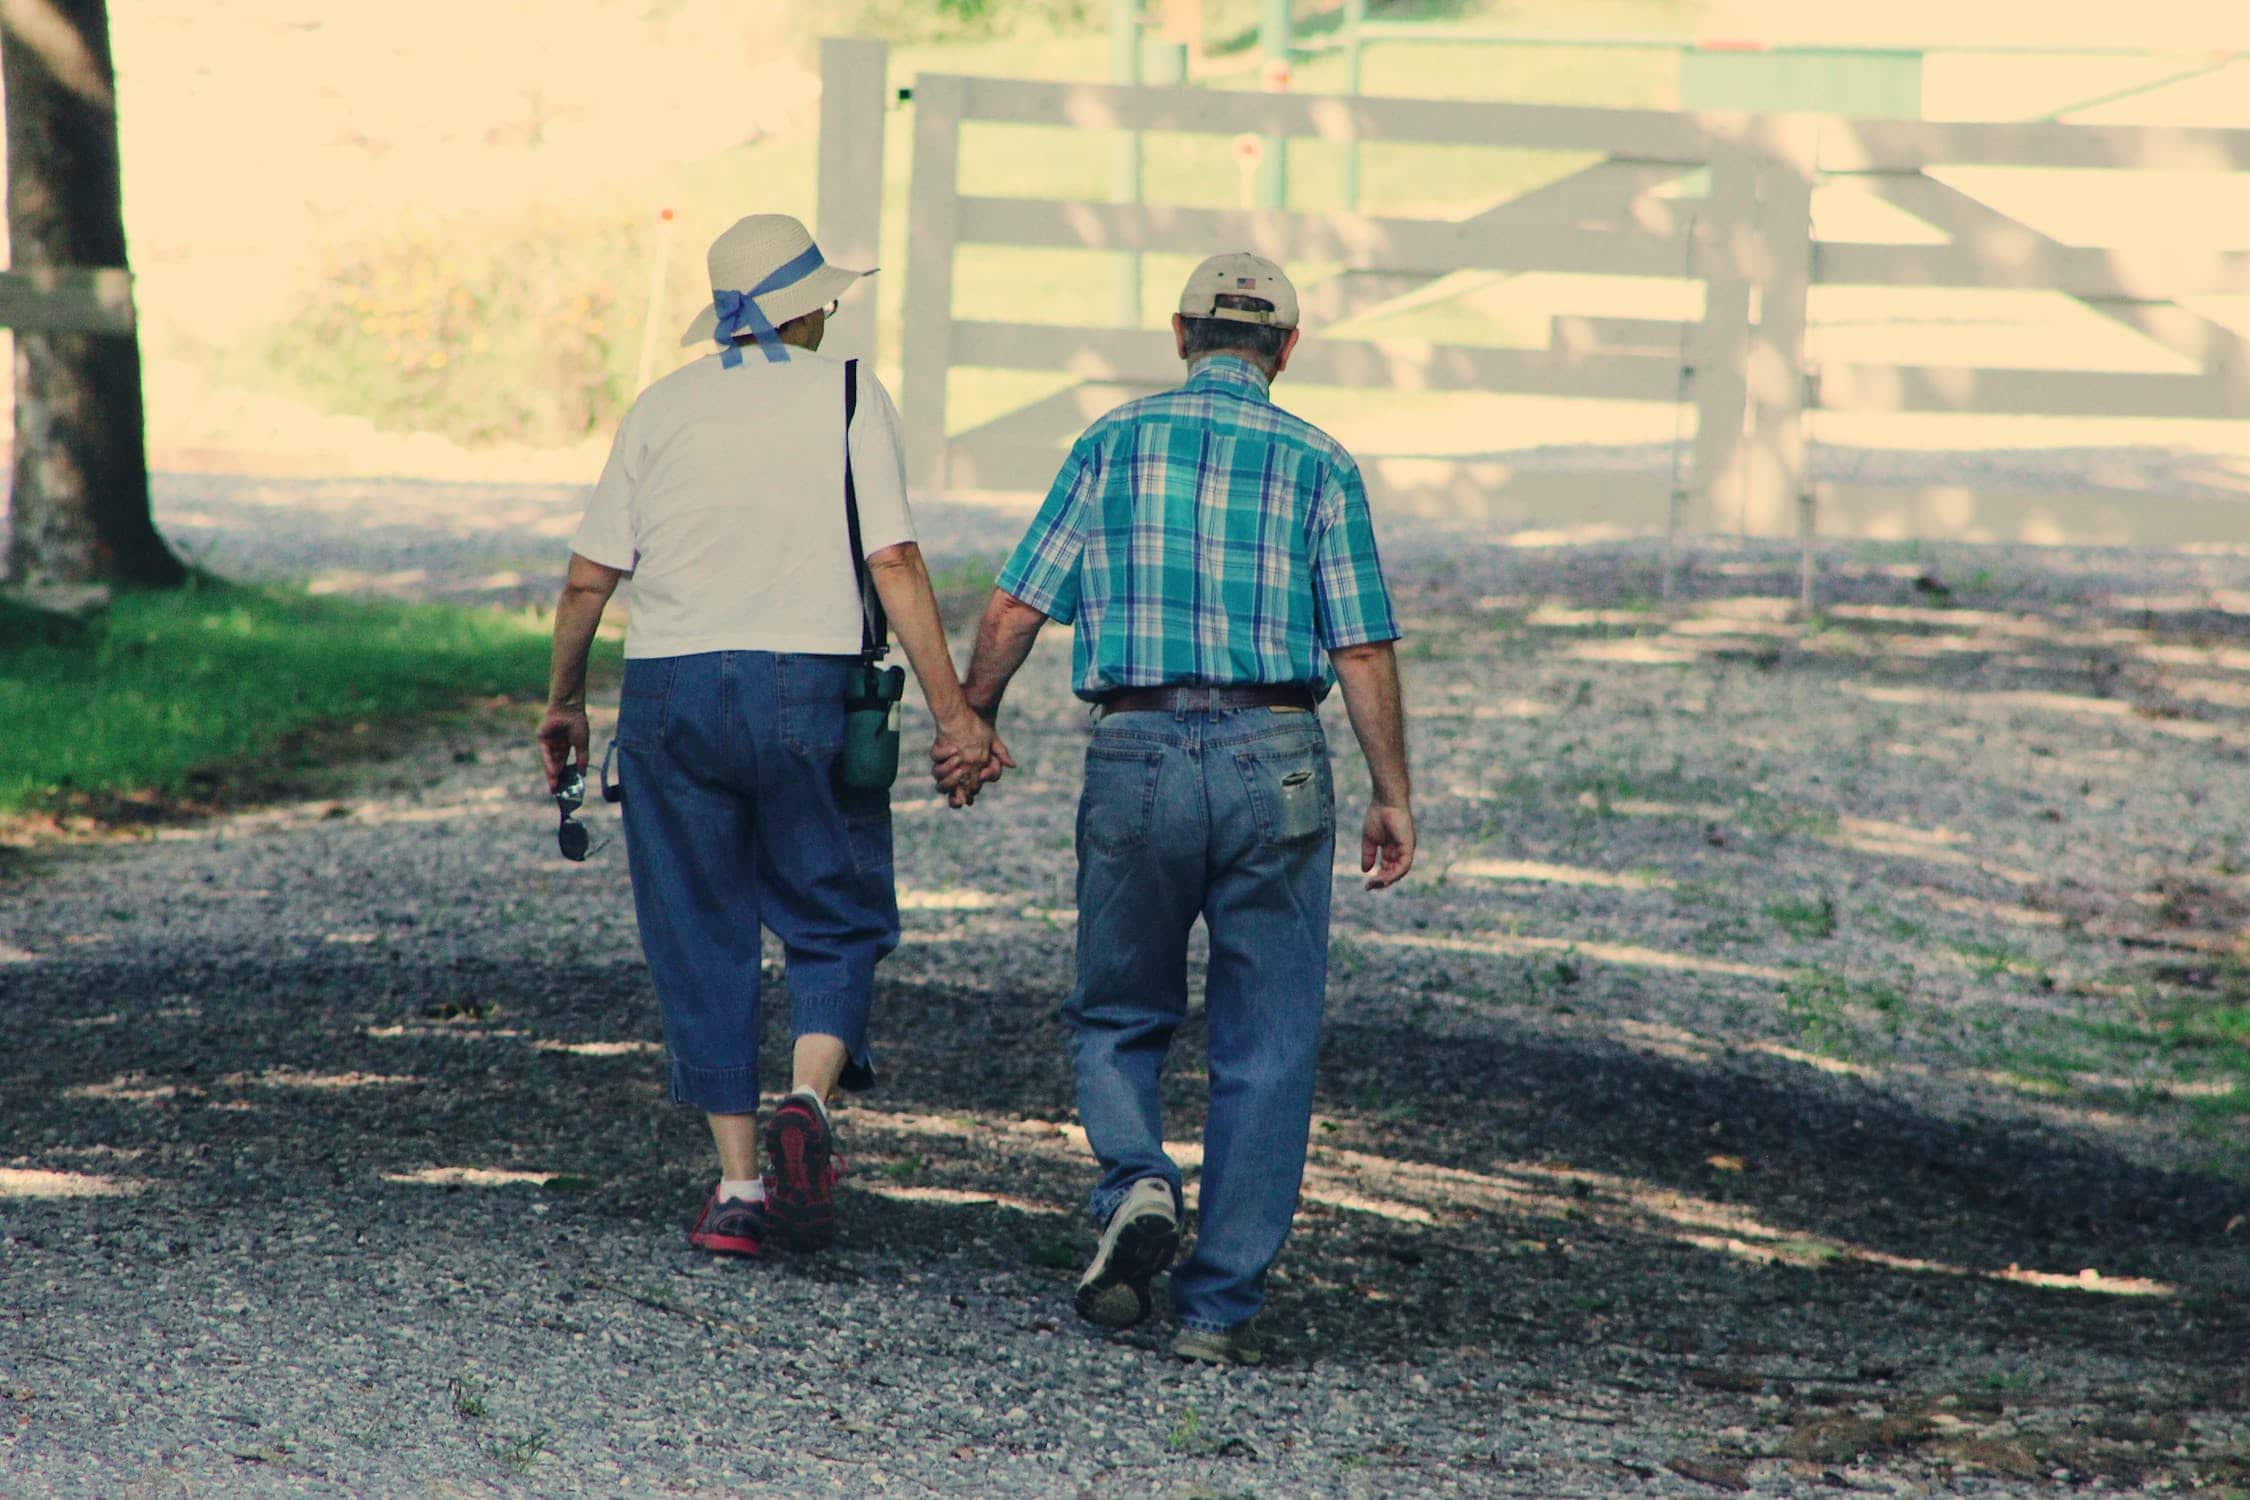 An elderly couple holding hands after a PA1P form